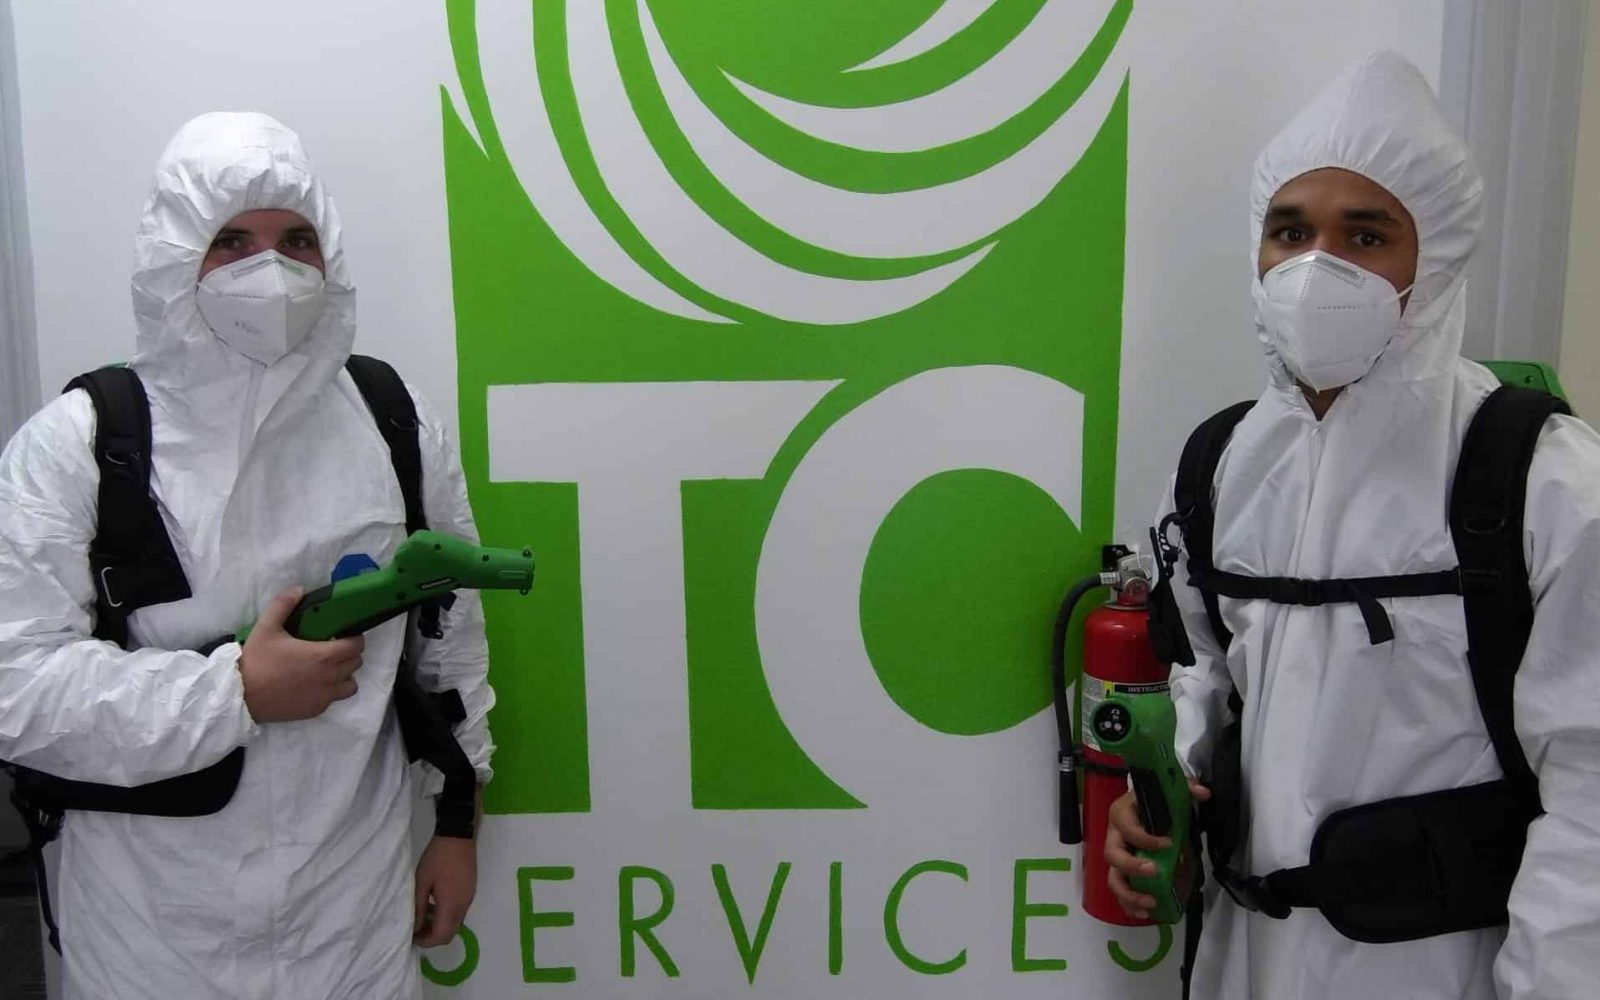 tc-services-disinfecting-service-commercial-greenville-sc